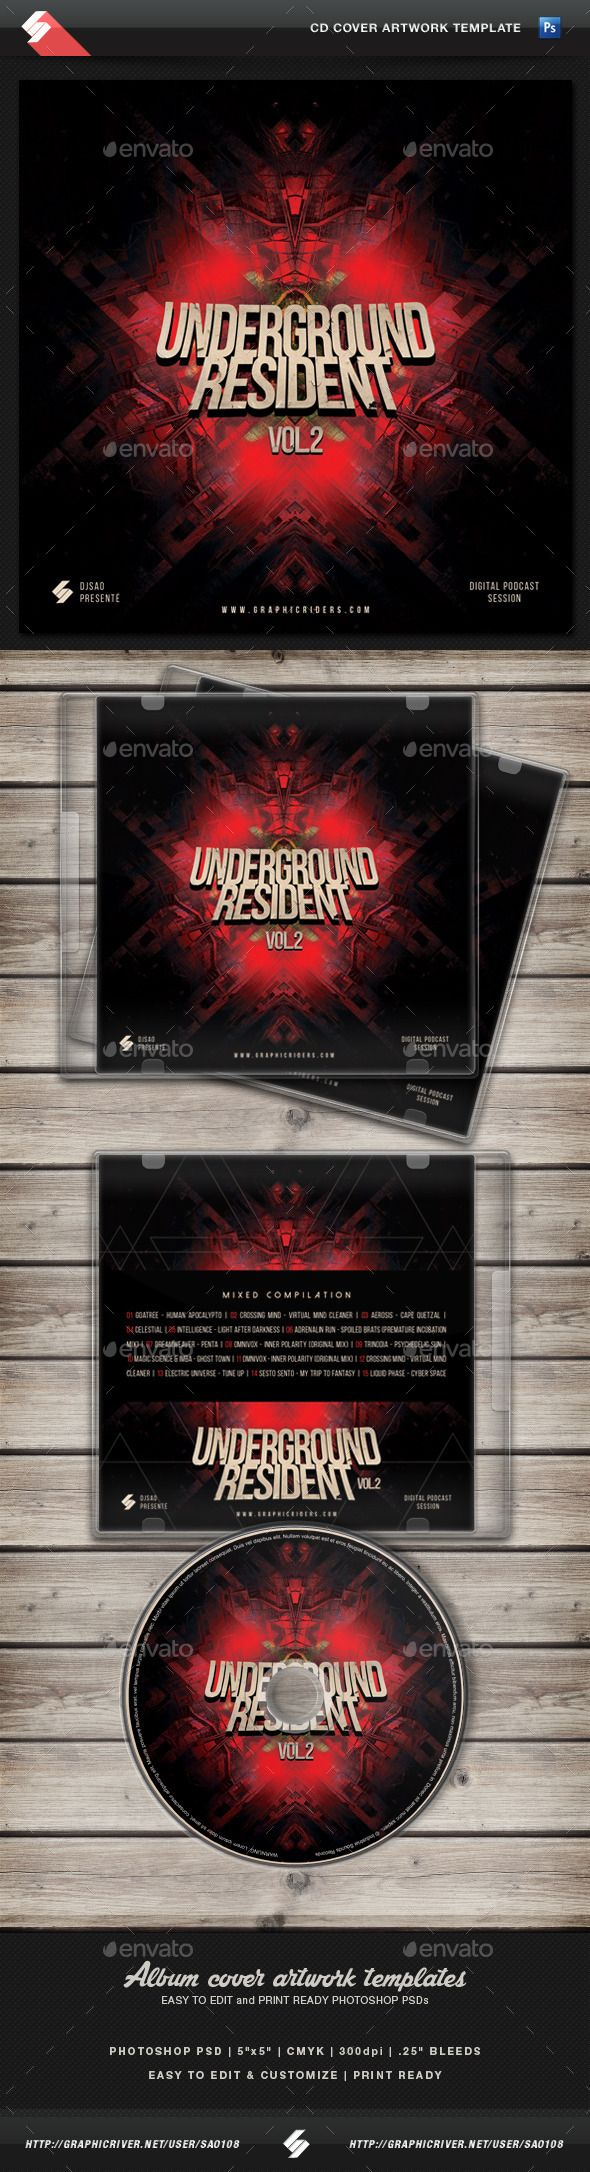 Cd box template download free vector art stock graphics amp images - Underground Resident Vol 2 Cd Cover Template